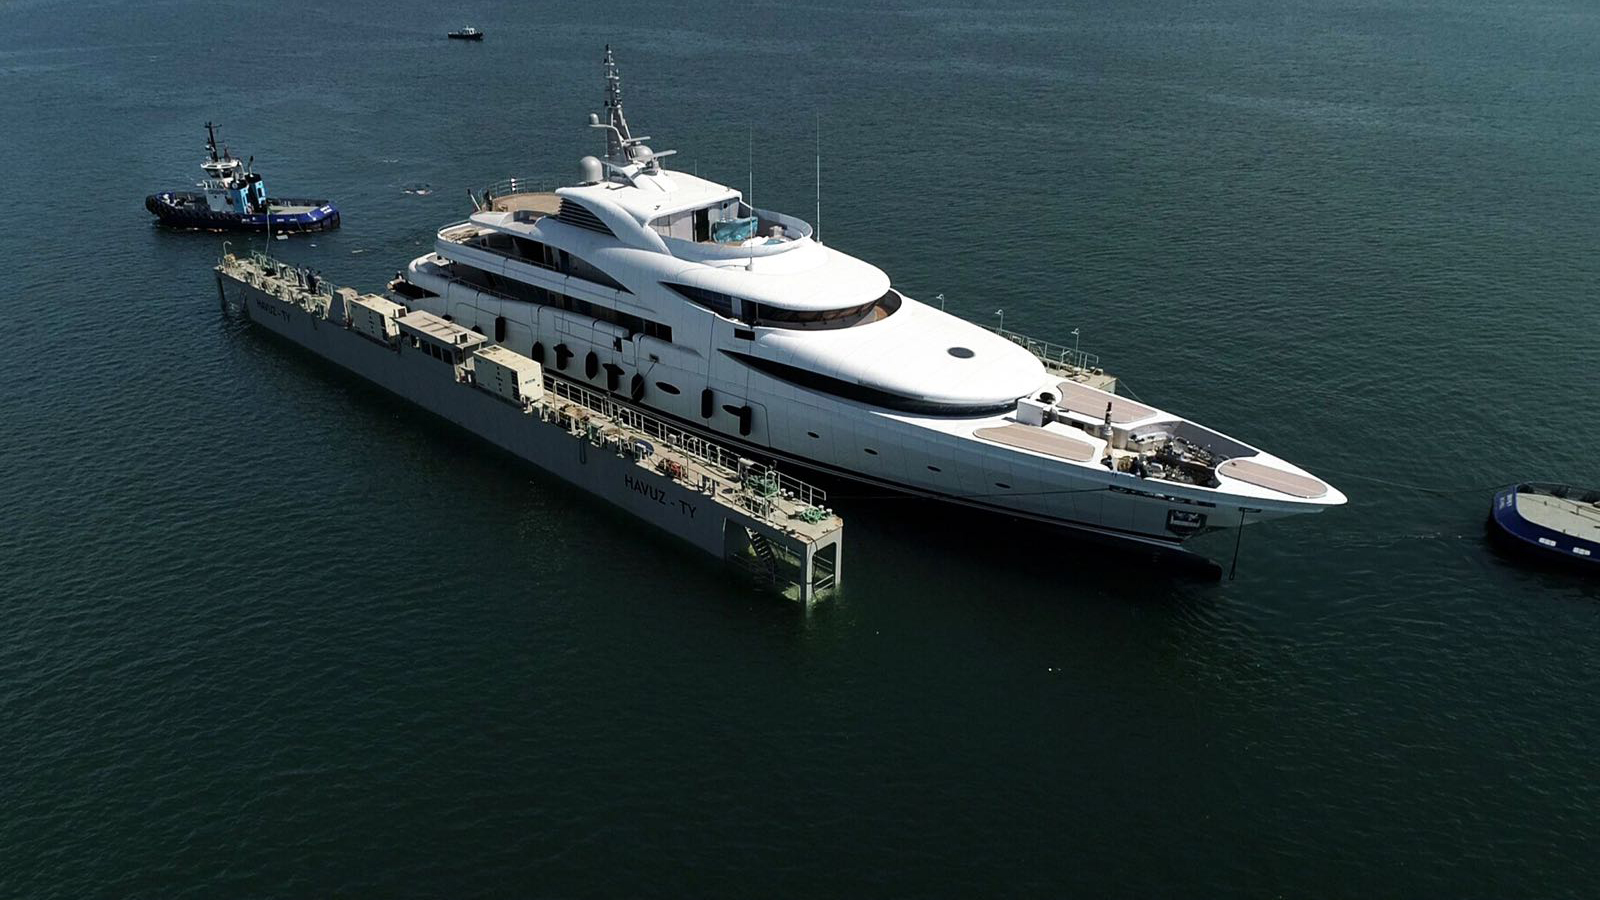 the-71-metre-explorer-yacht-victoria-was-launched-in-april-2018-by-aes-yachts